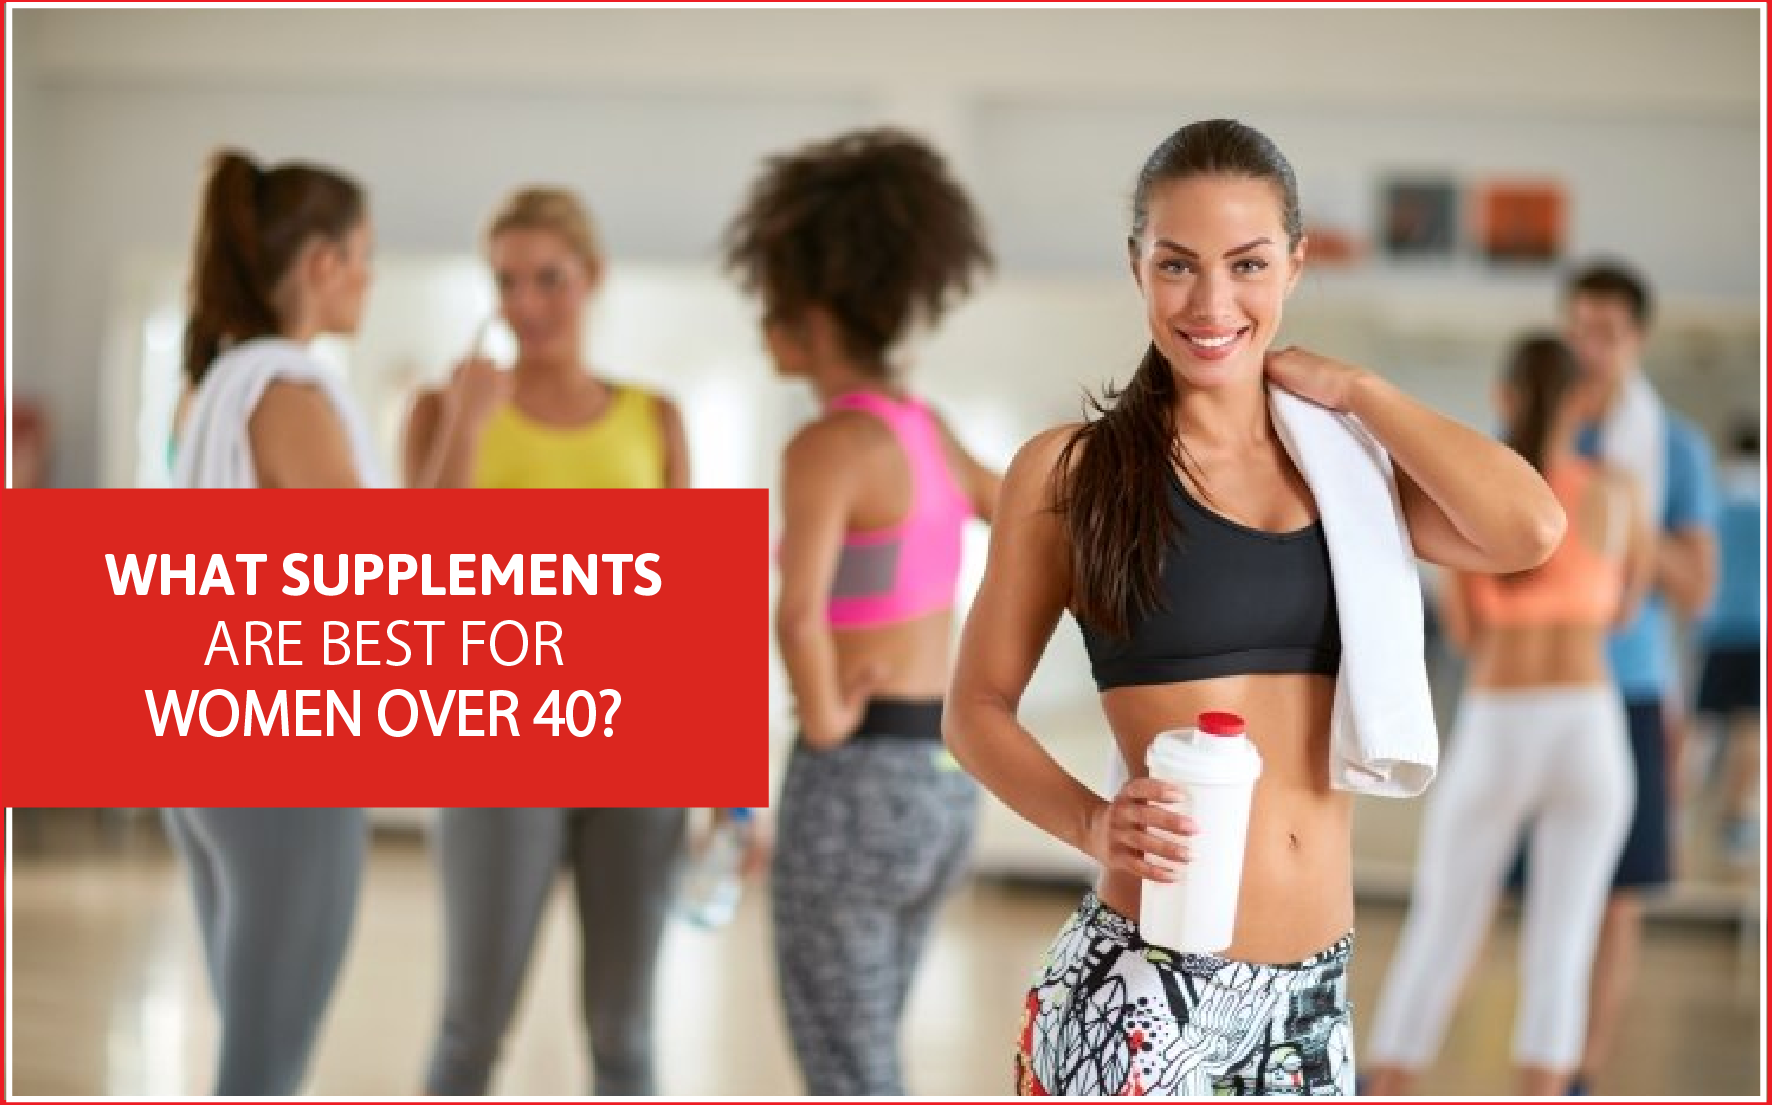 WHAT SUPPLEMENTS ARE BEST FOR WOMEN OVER 40